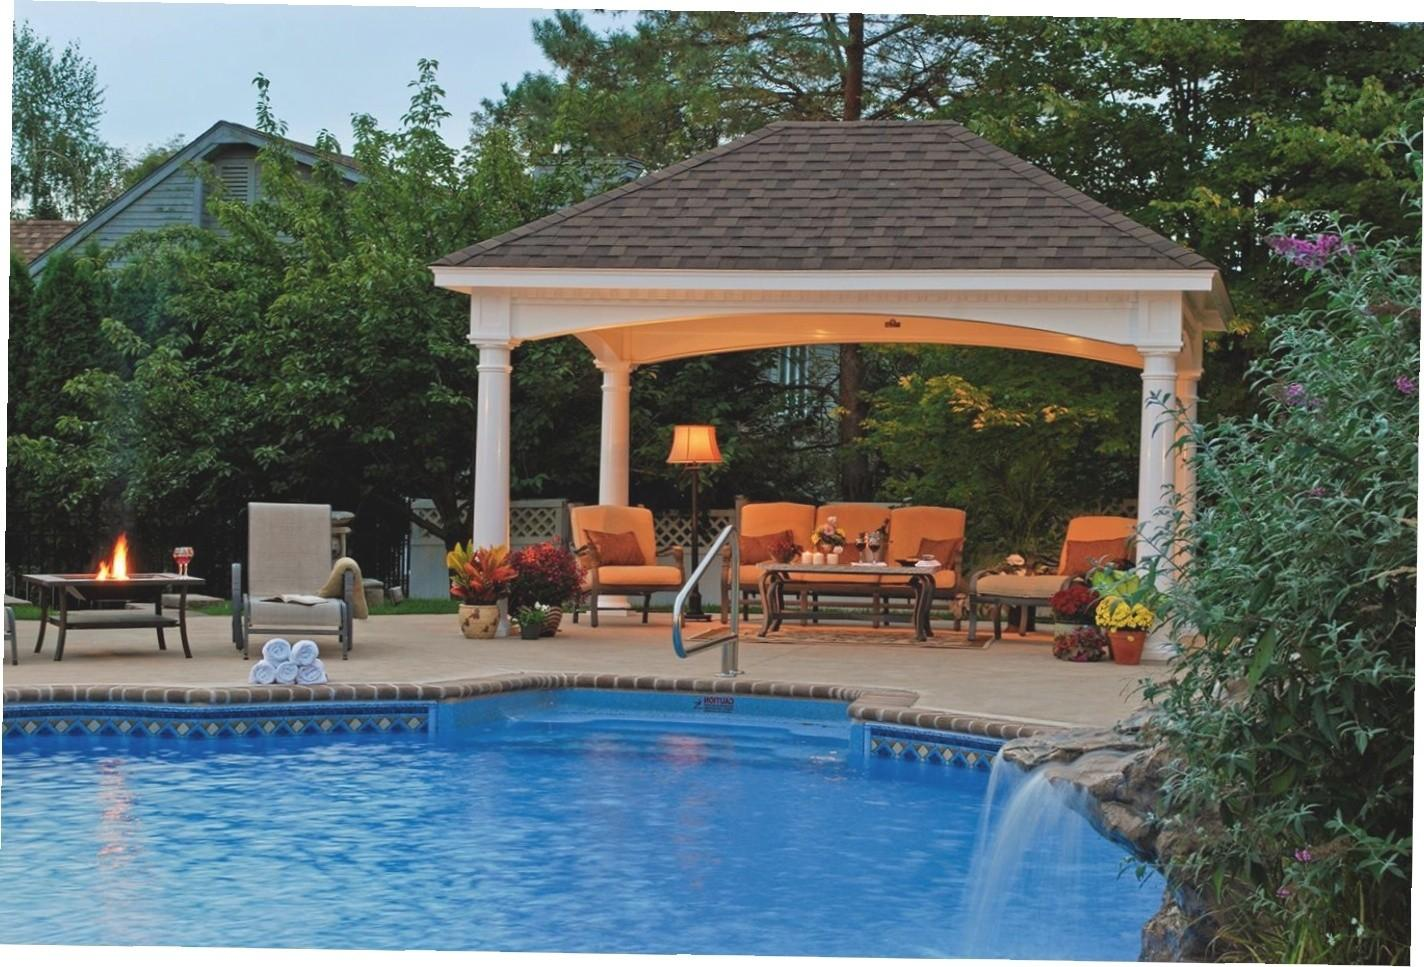 Pool Gazebo Kits Ideas